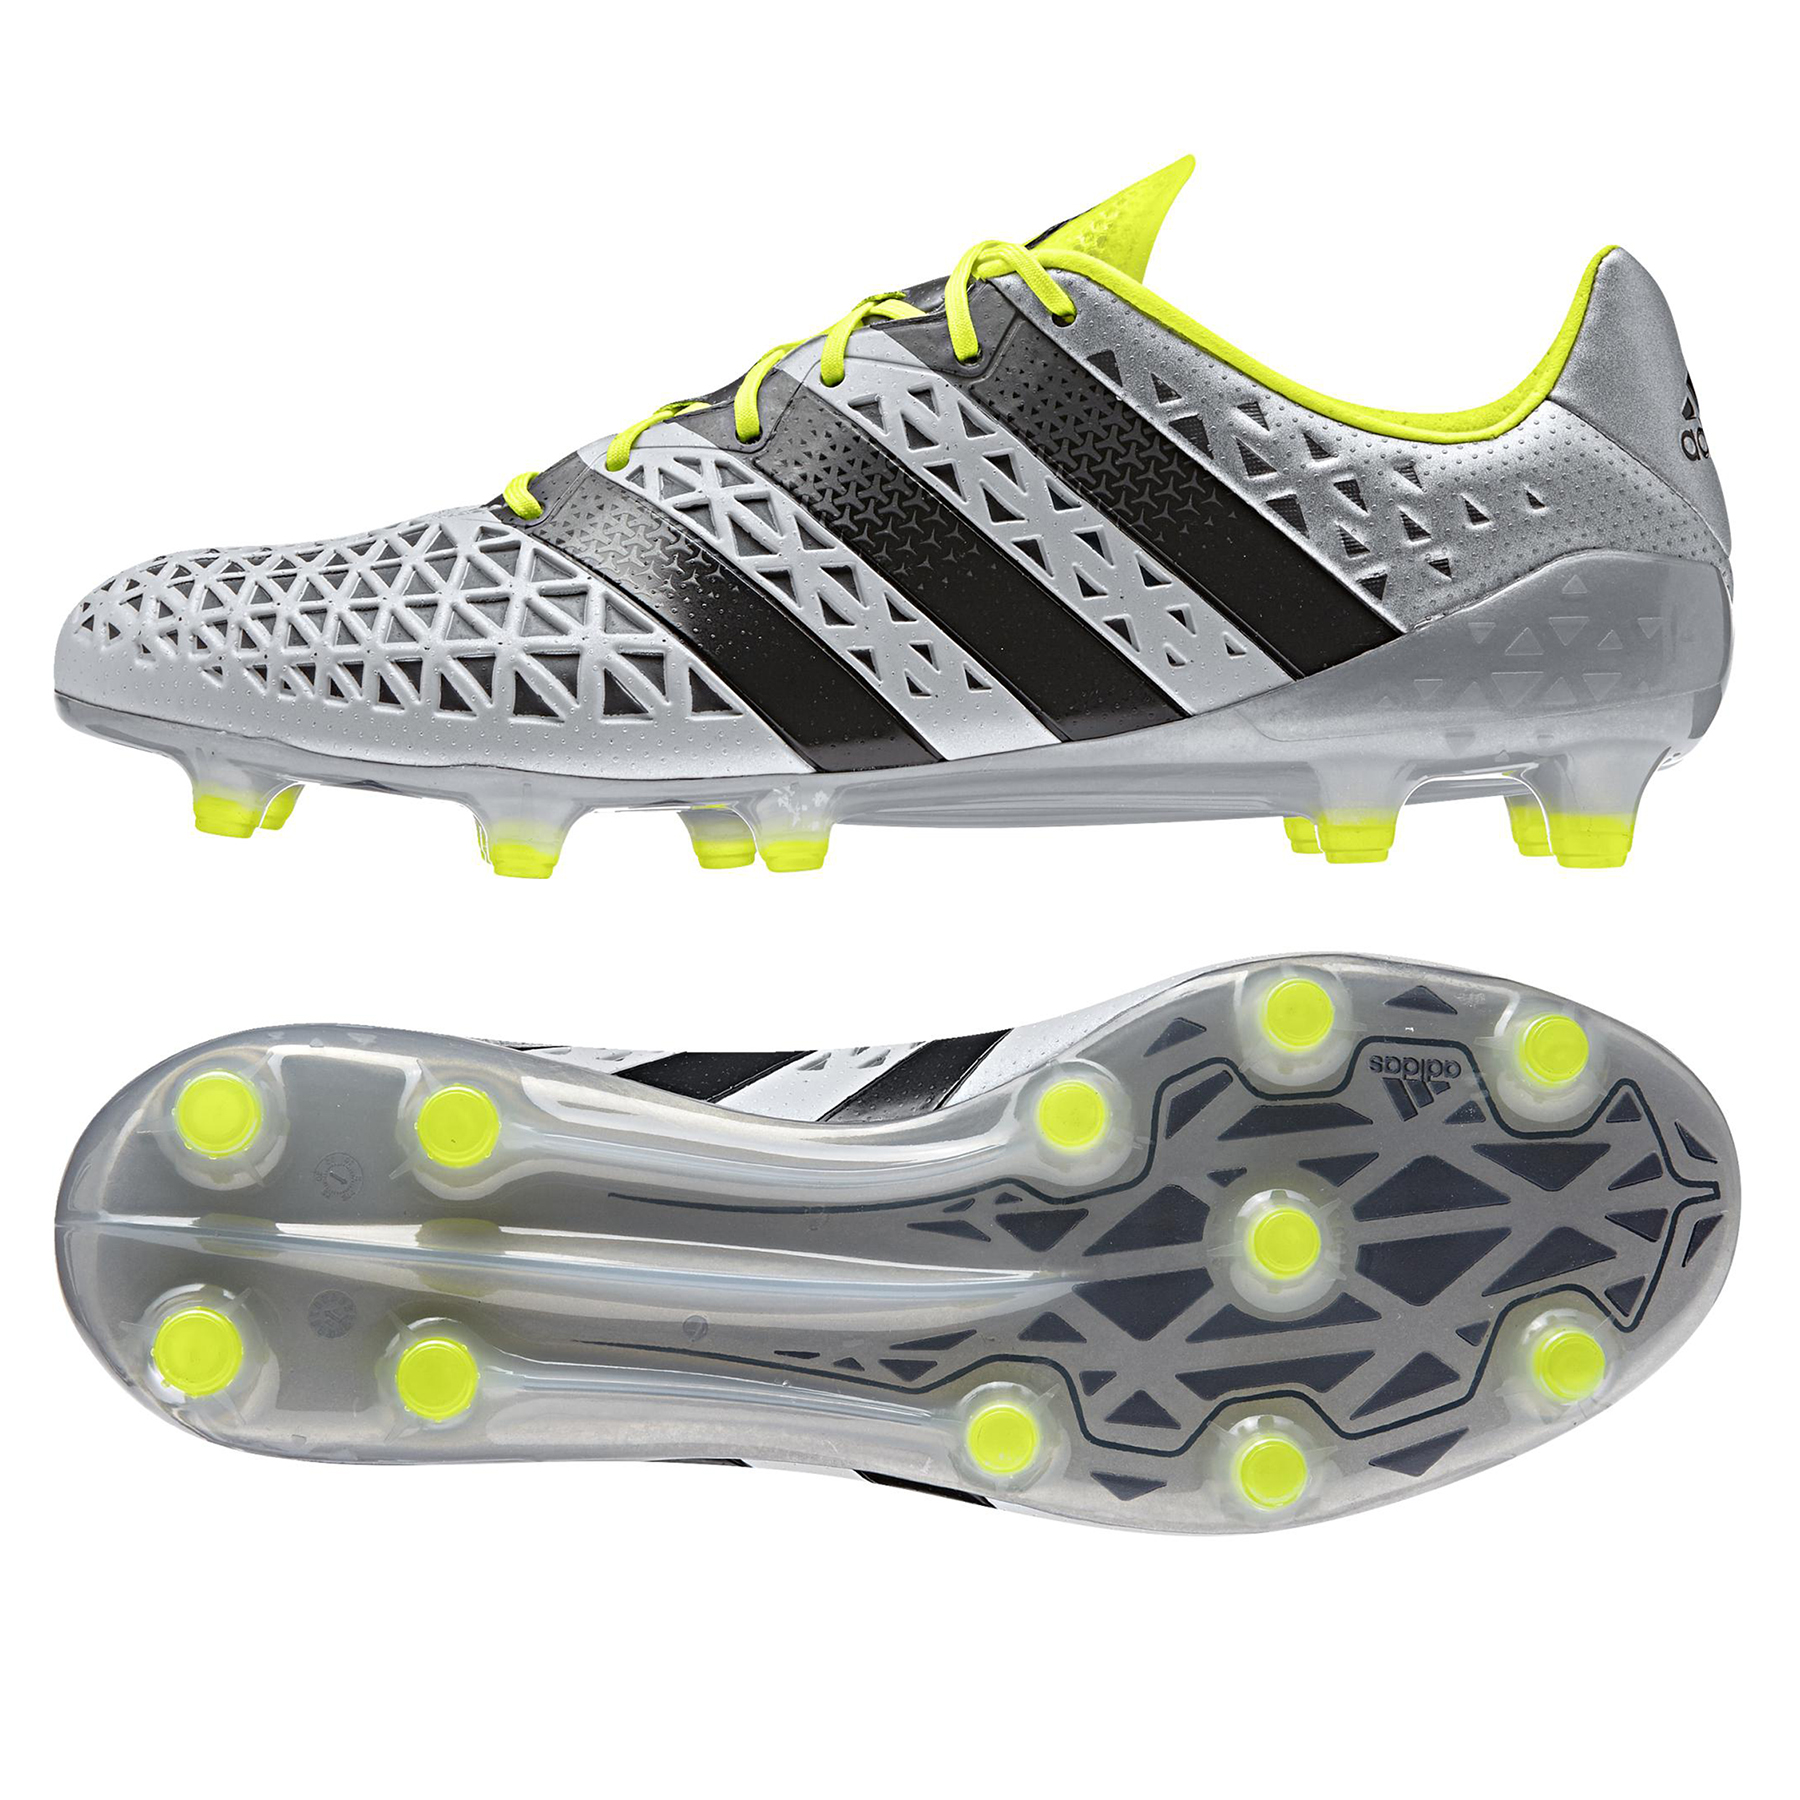 Image of adidas Ace 16.1 Firm Ground Football Boots - Silver Metallic/Core Blac